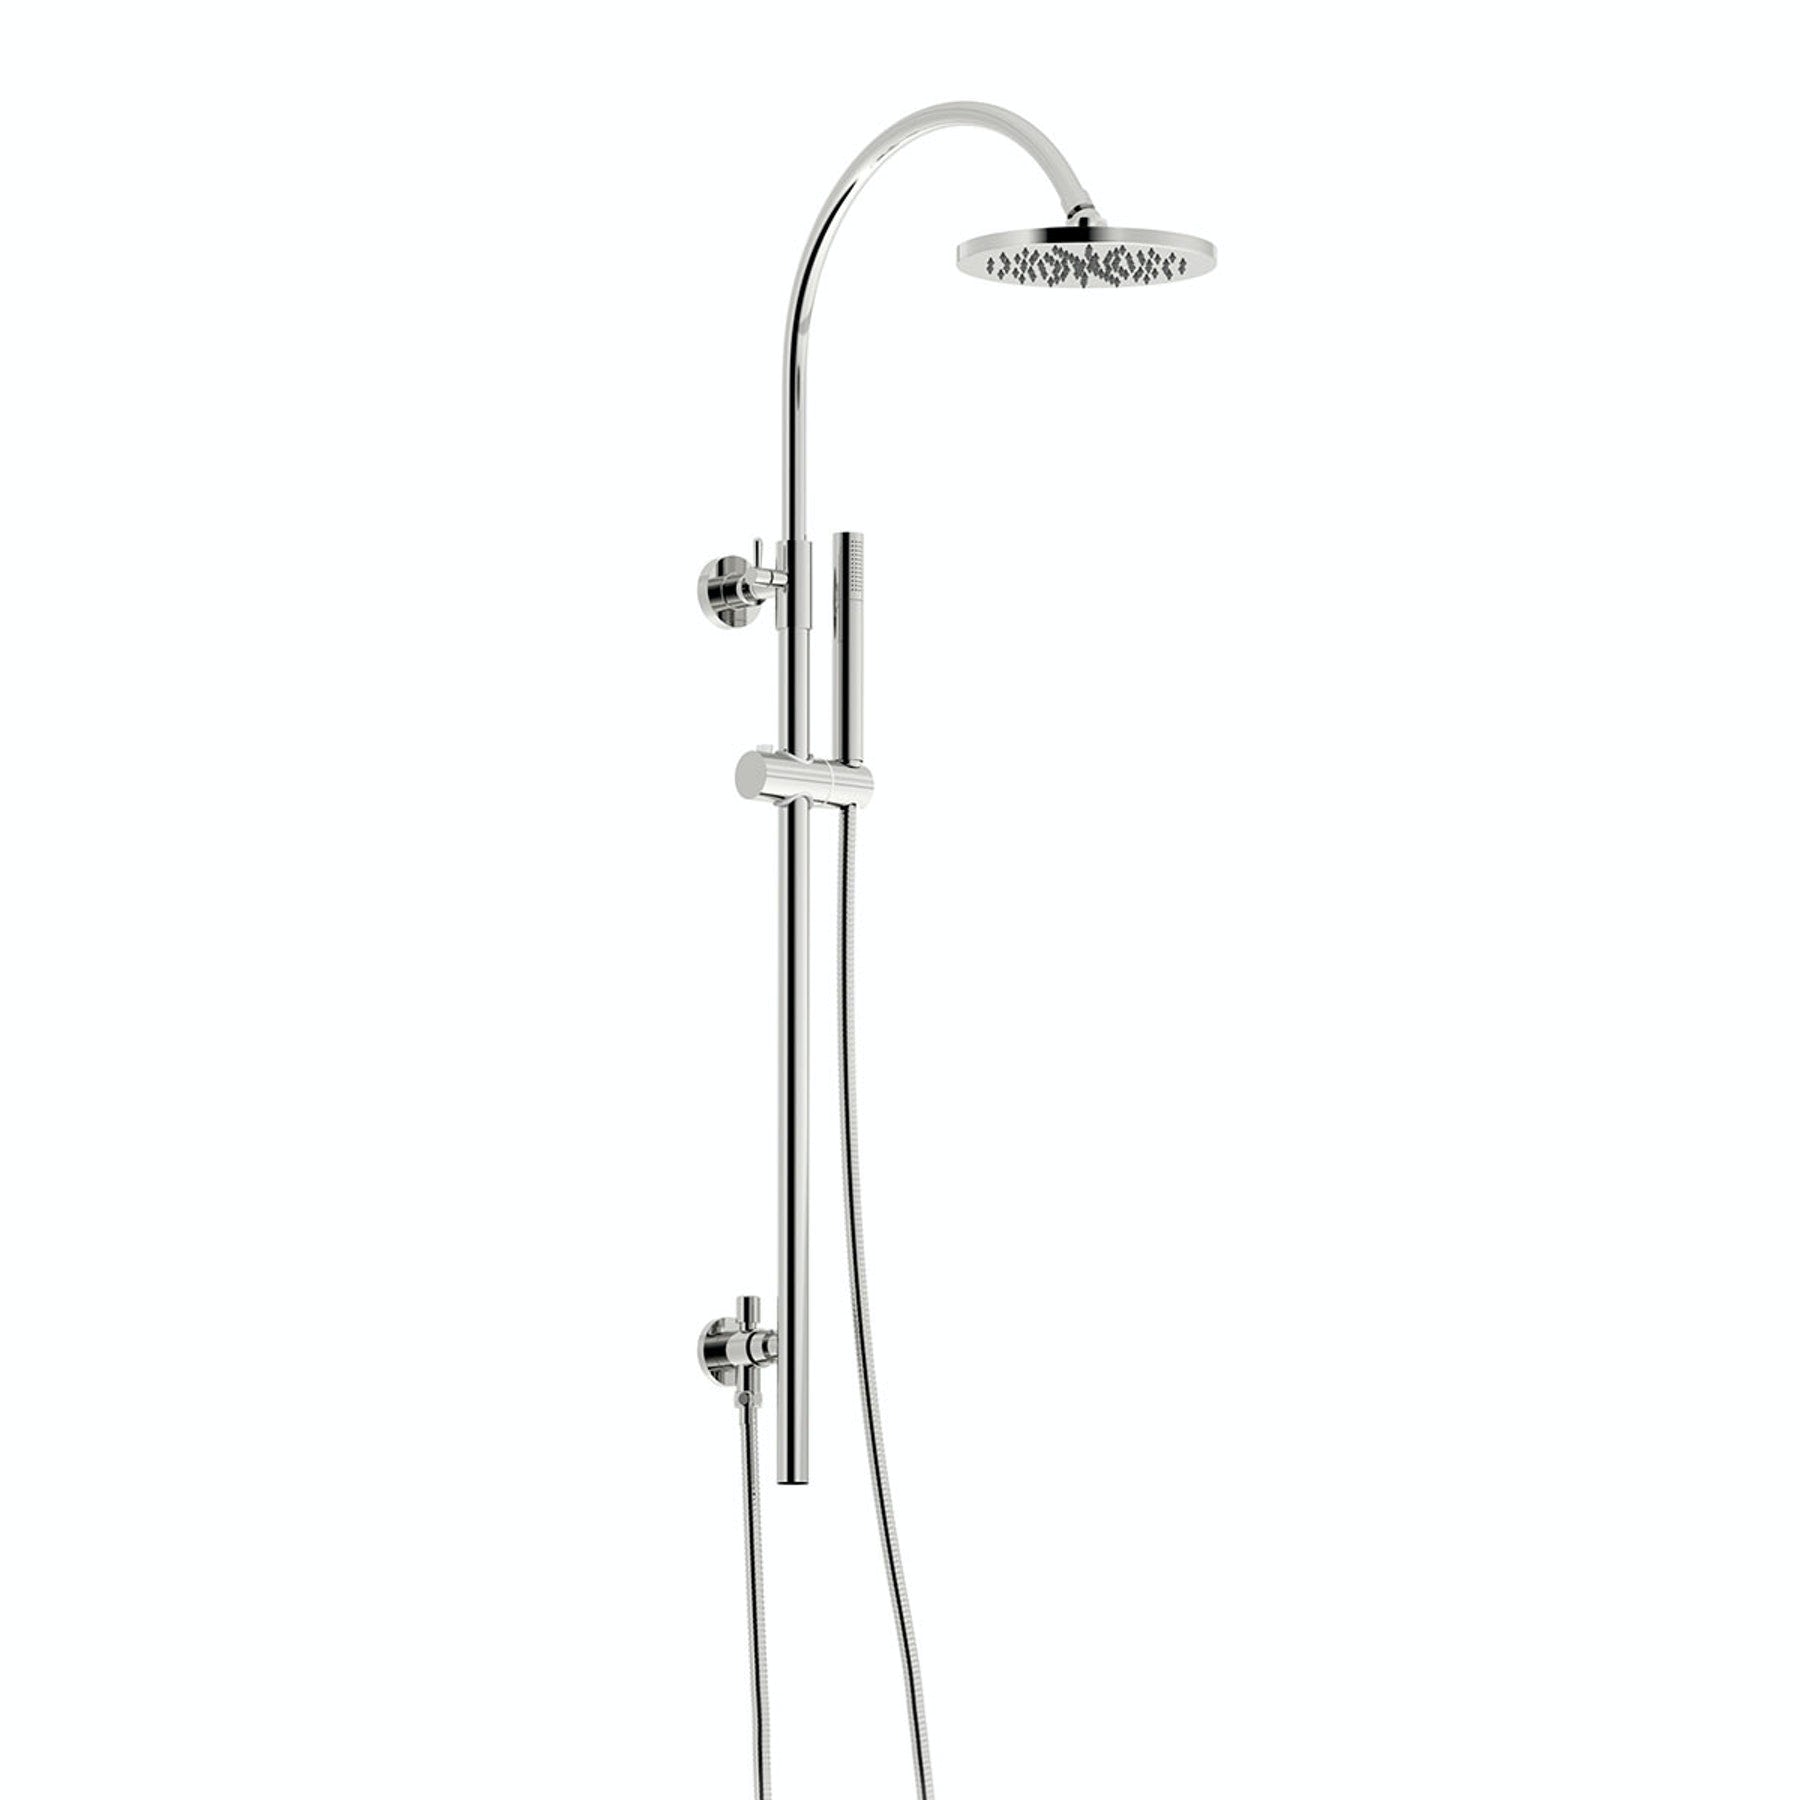 Mode Aria round shower riser kit